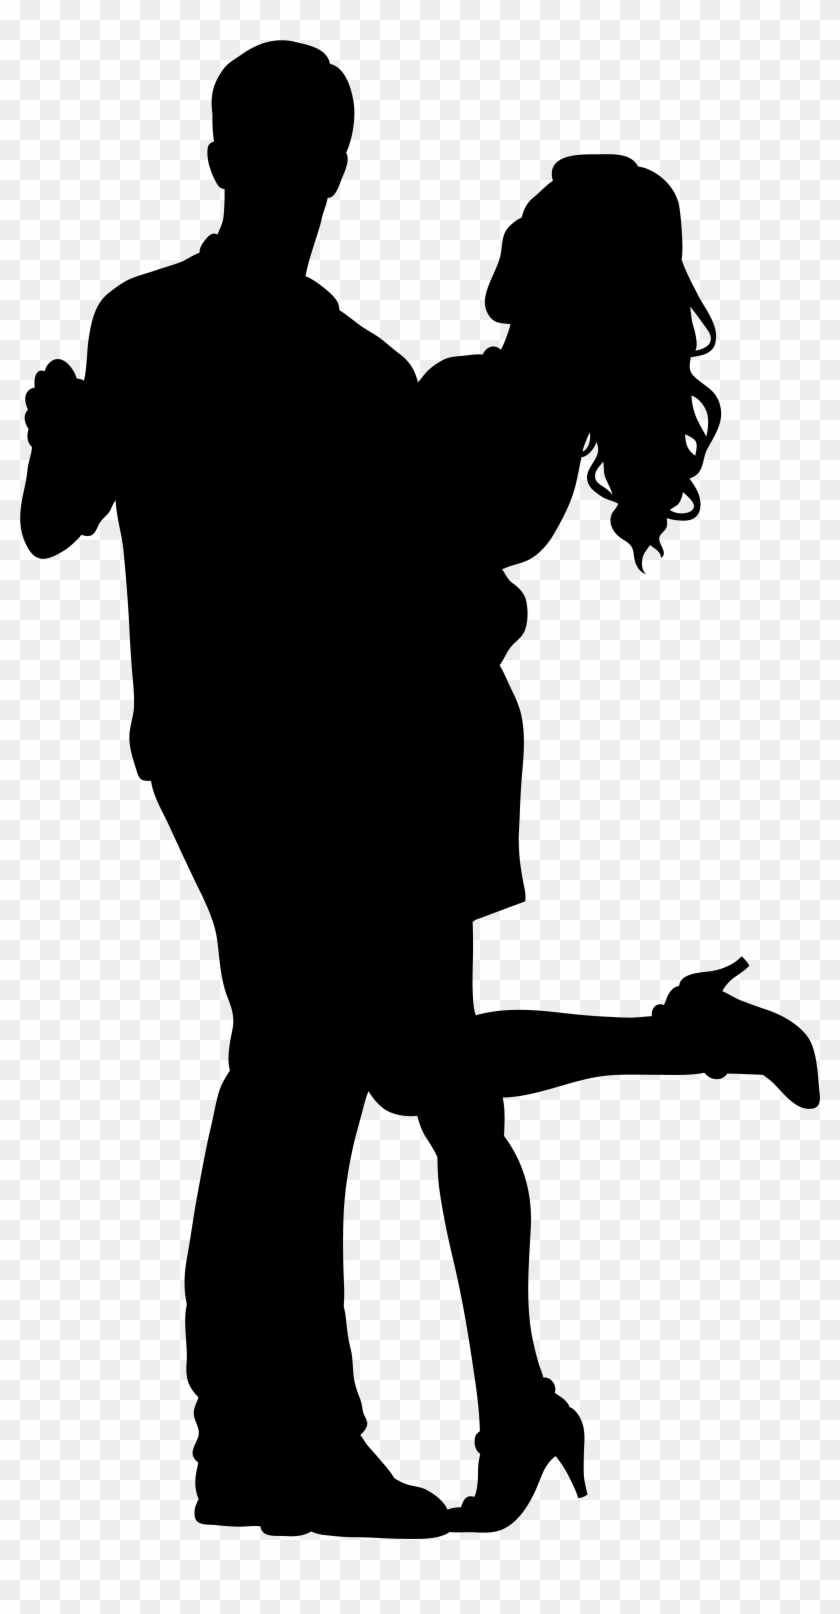 Couple Dancers Silhouette Png Transparent Clip Art - Dancer Silhouette Png #10286